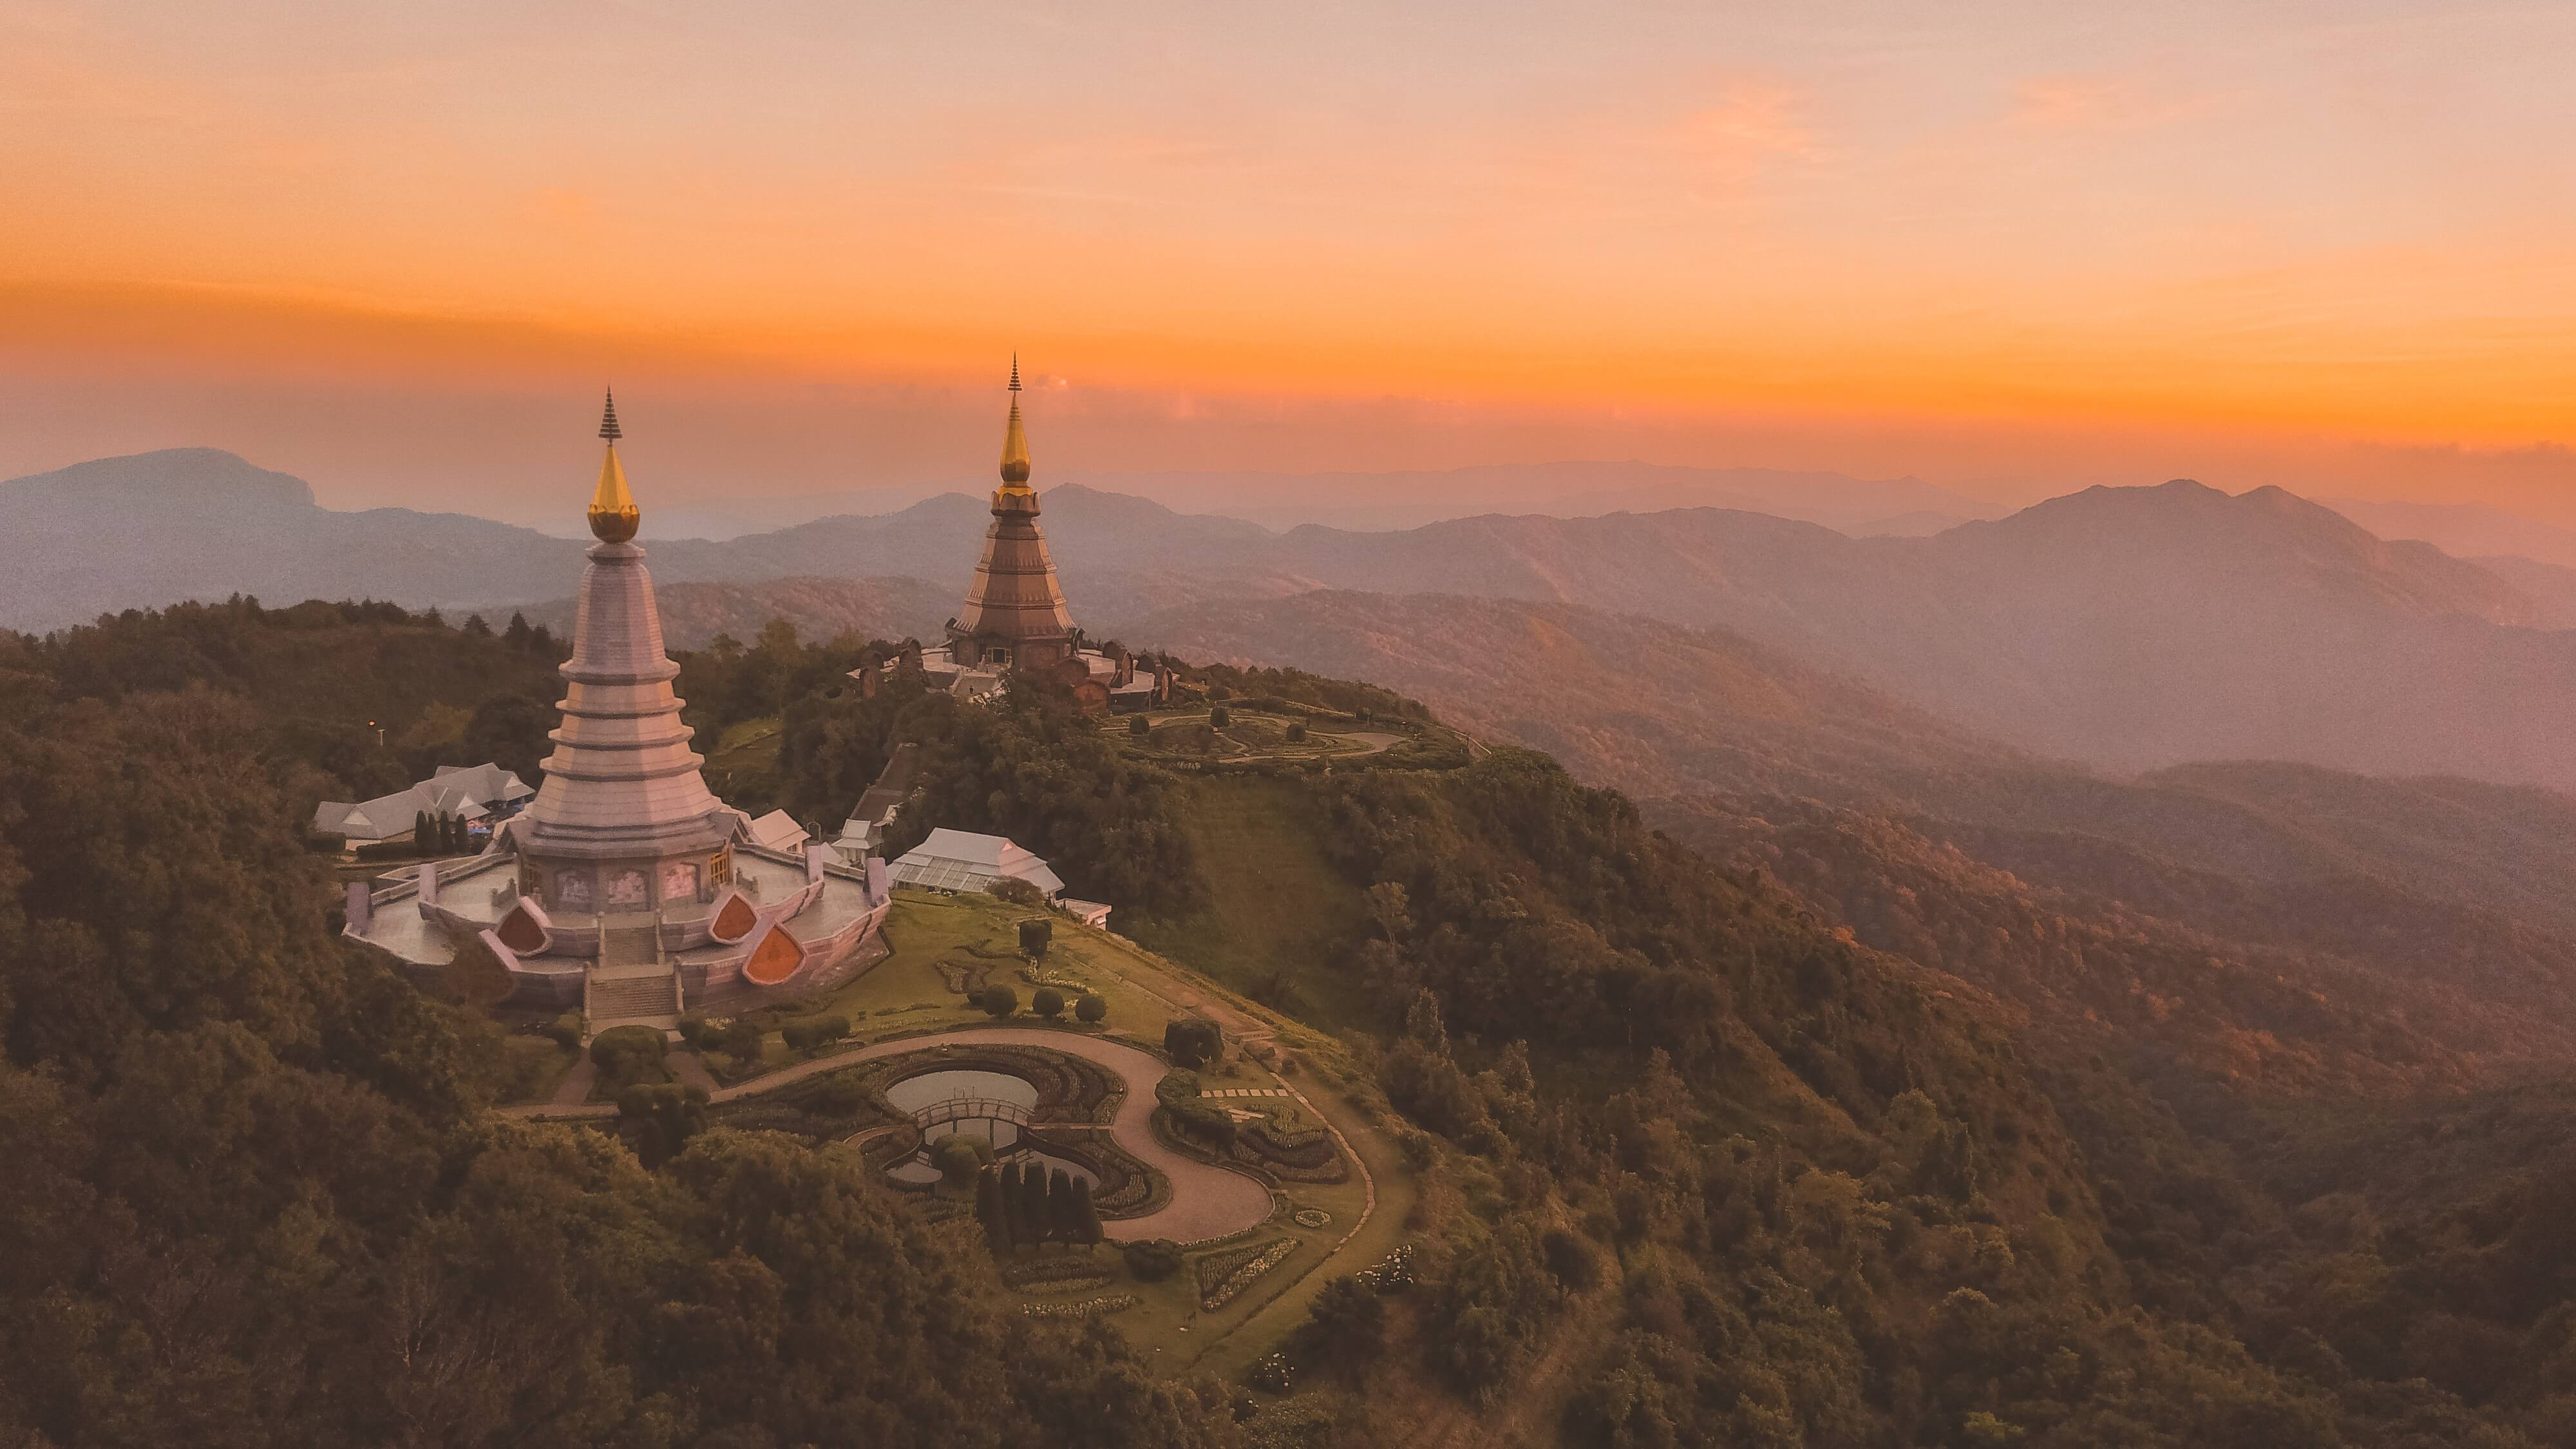 Best Day Trips from Chiang Mai According to Travel Bloggers